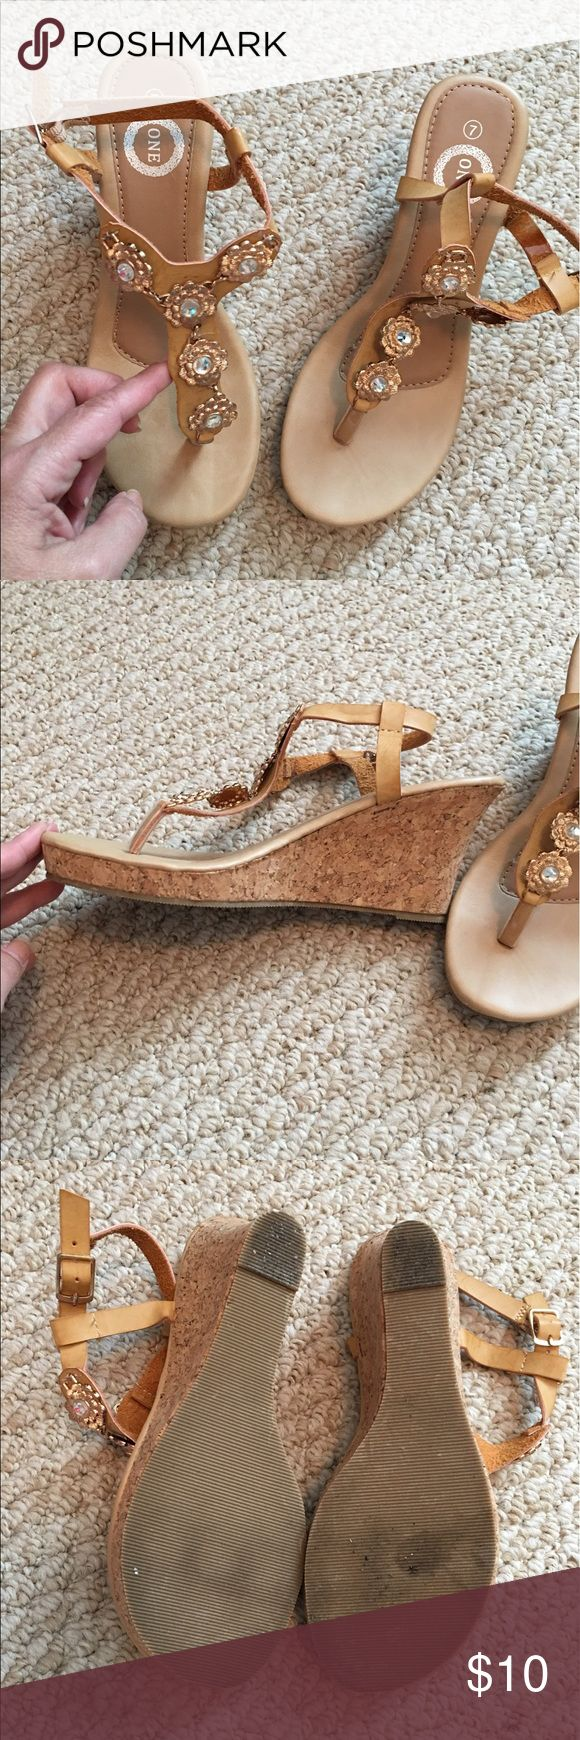 Ladies Wedge Sandals Size 7 Excellent preowned condition, never worn outside sandals. These fit true to size. ONE Shoes Wedges